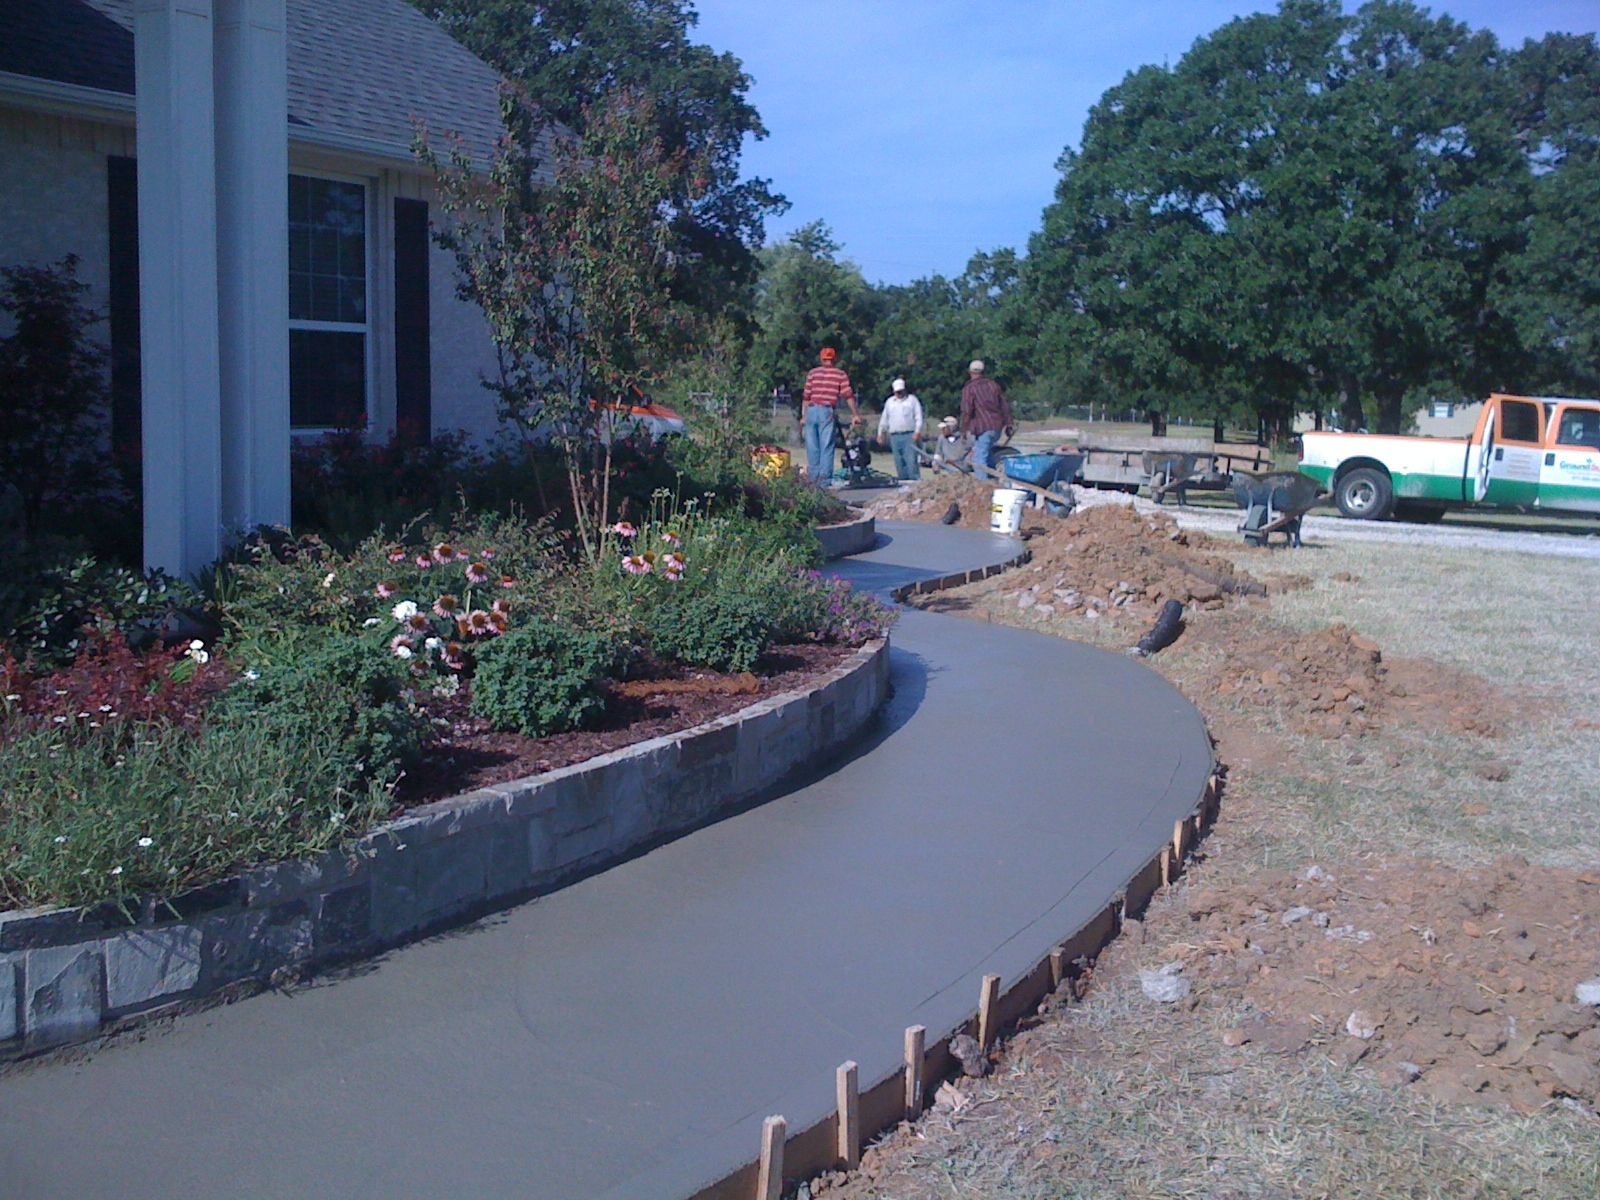 GroundScape, a Fort Worth Landscape Company, installed